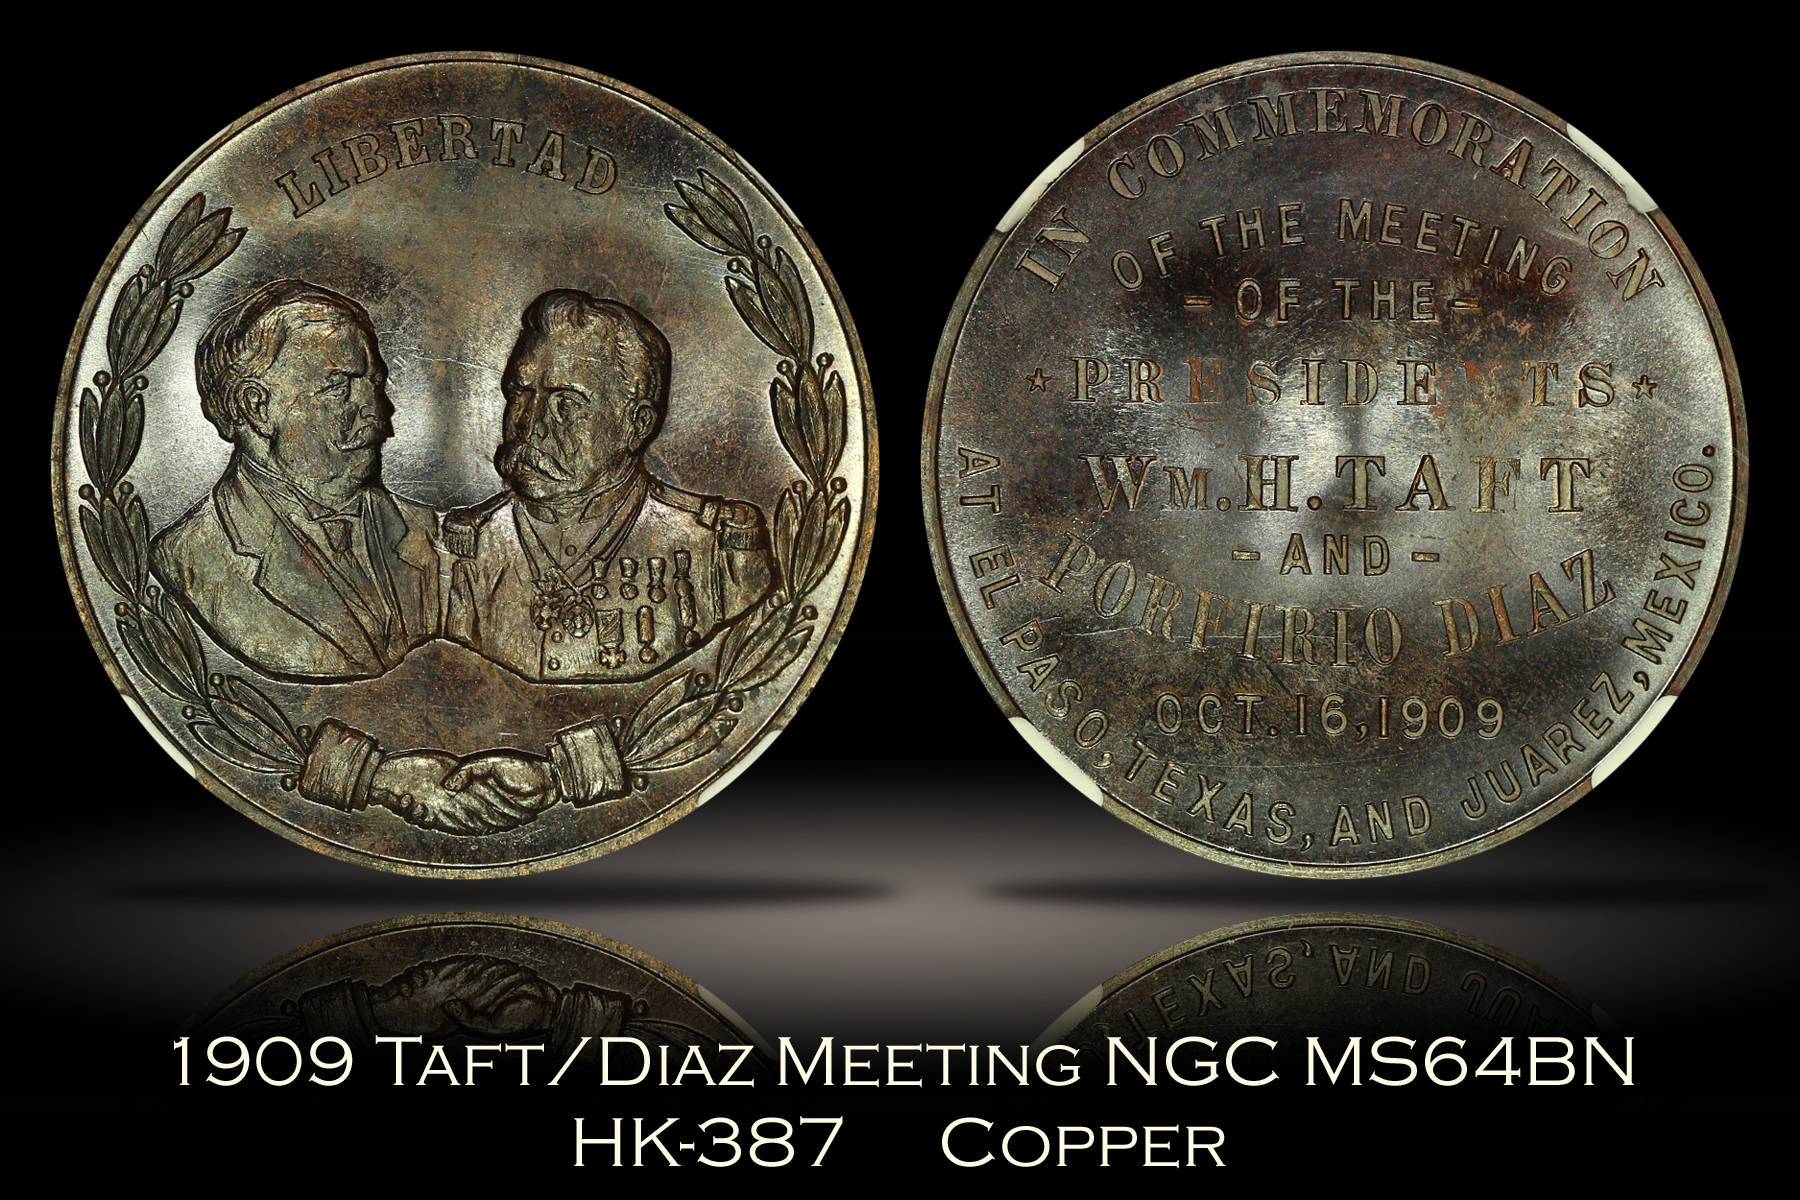 1909 Taft/Diaz Meeting Medal HK-387 NGC MS64BN